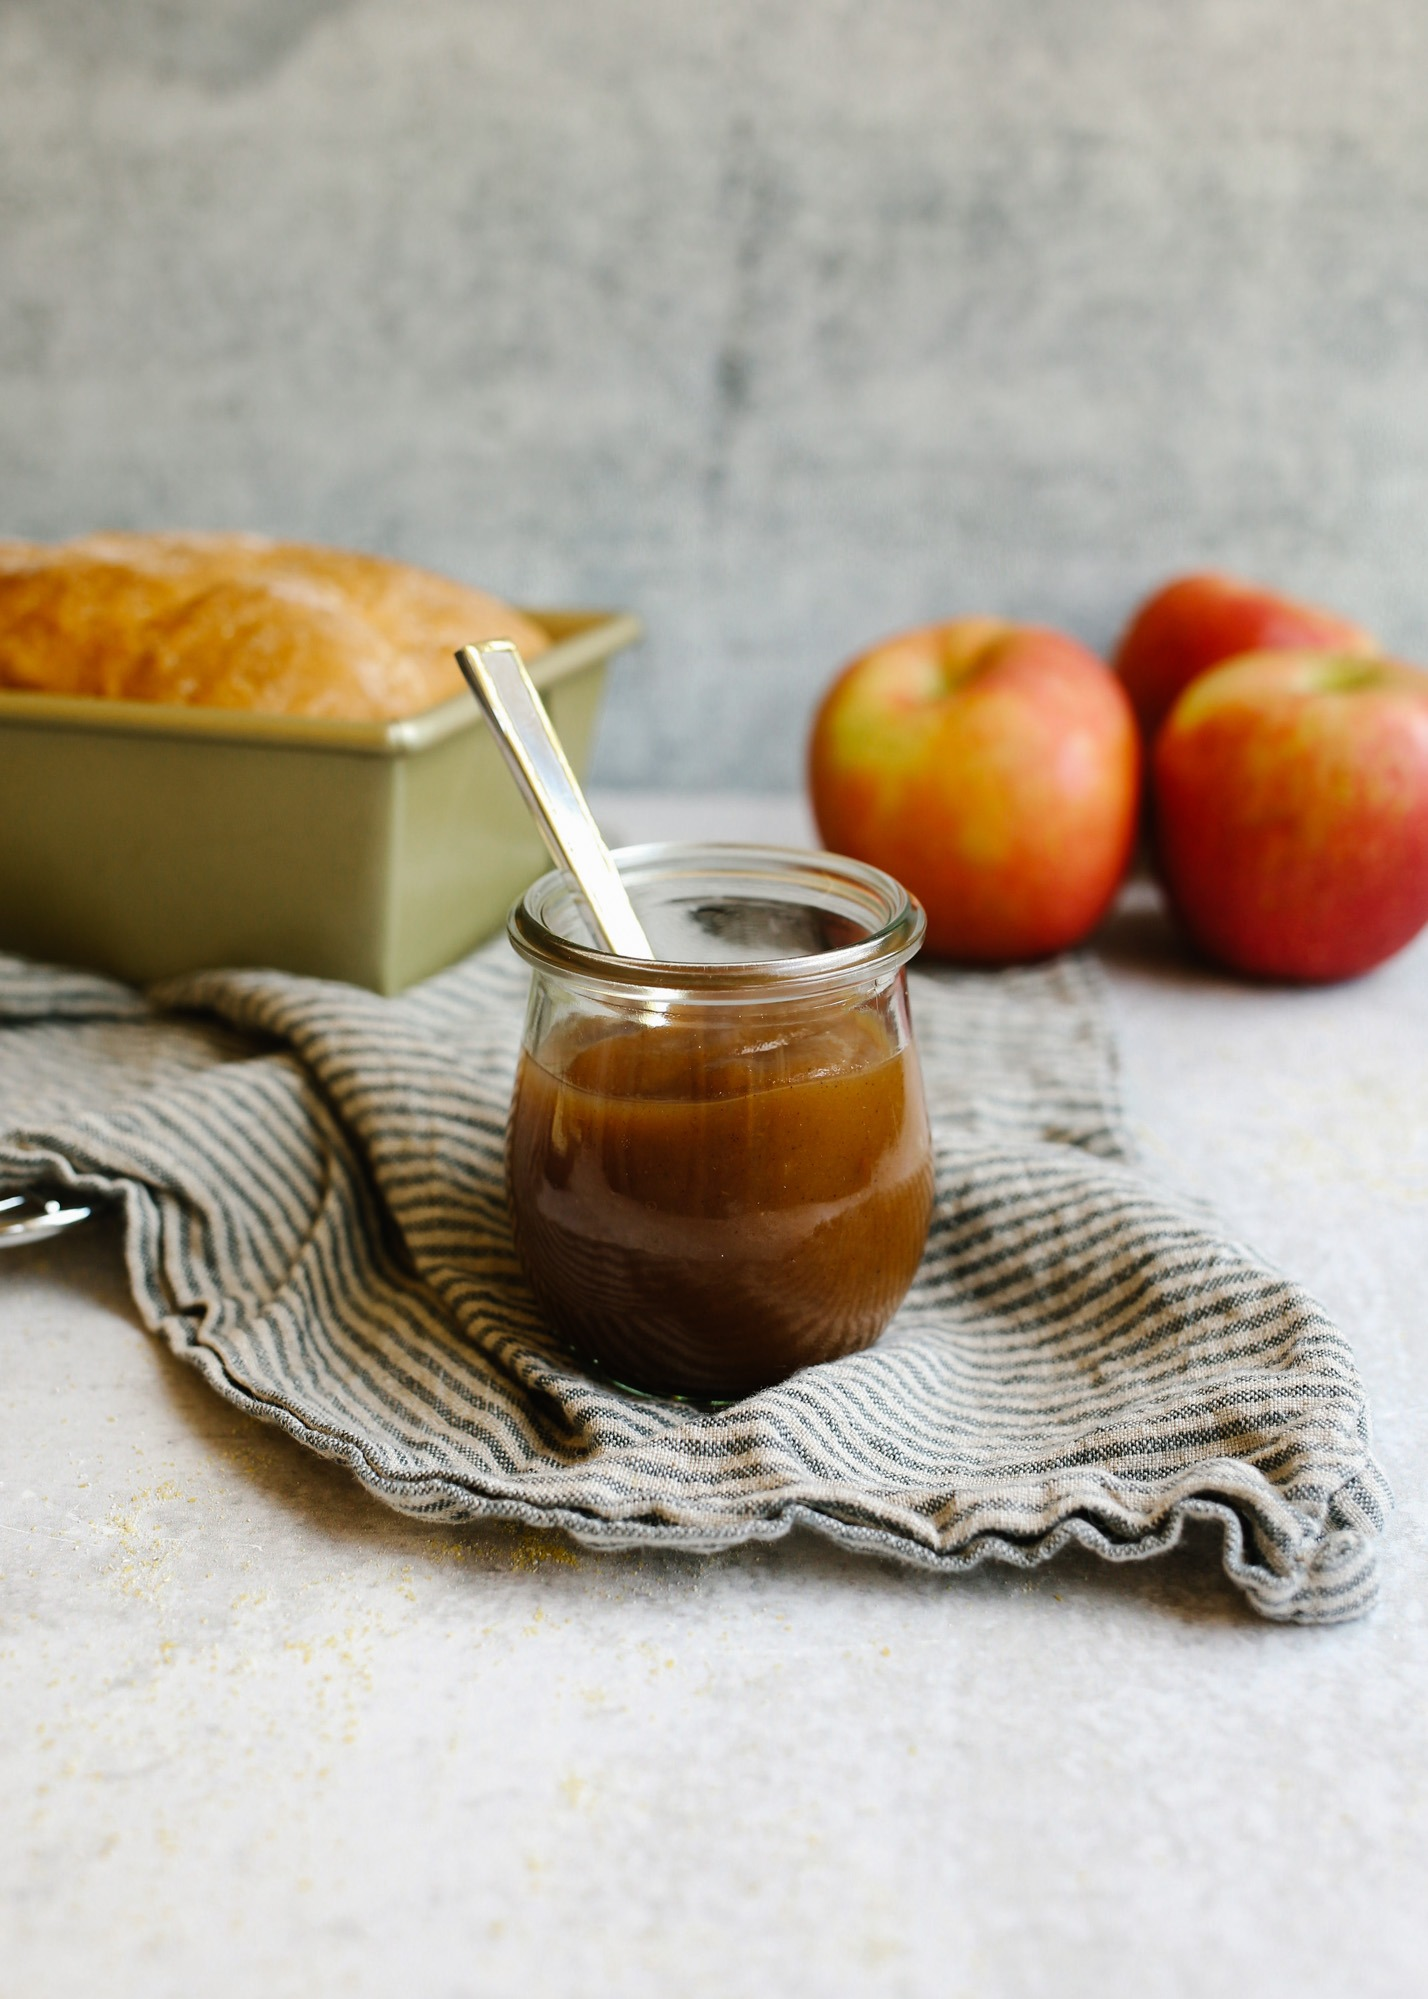 English Muffin Bread and Apple Butter this simple no knead one bowl quick rise yeast bread is a loaf form of the classic breakfast dish. Serve it with homemade maple apple butter made in a slow cooker/ crock pot. This is a simple make ahead baked good perfect for the fall. Read more at thewoodandspoon.com